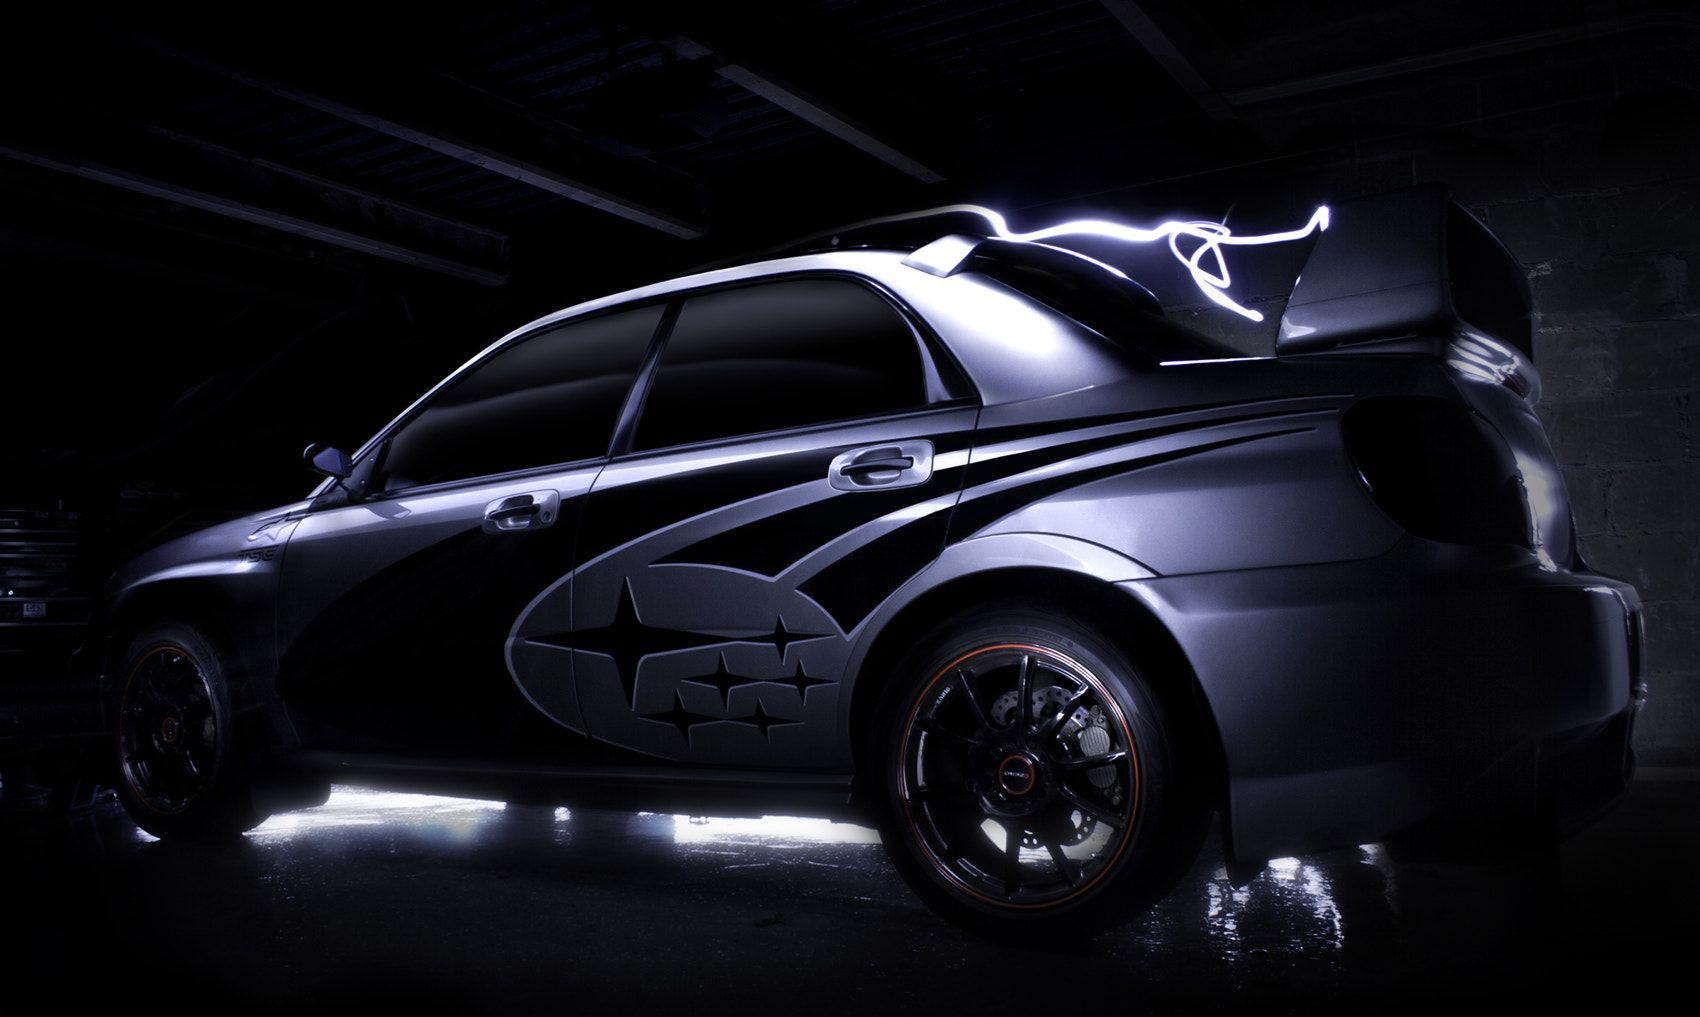 Photograph 2005 Subaru WRX STi by Aaron P on 500px